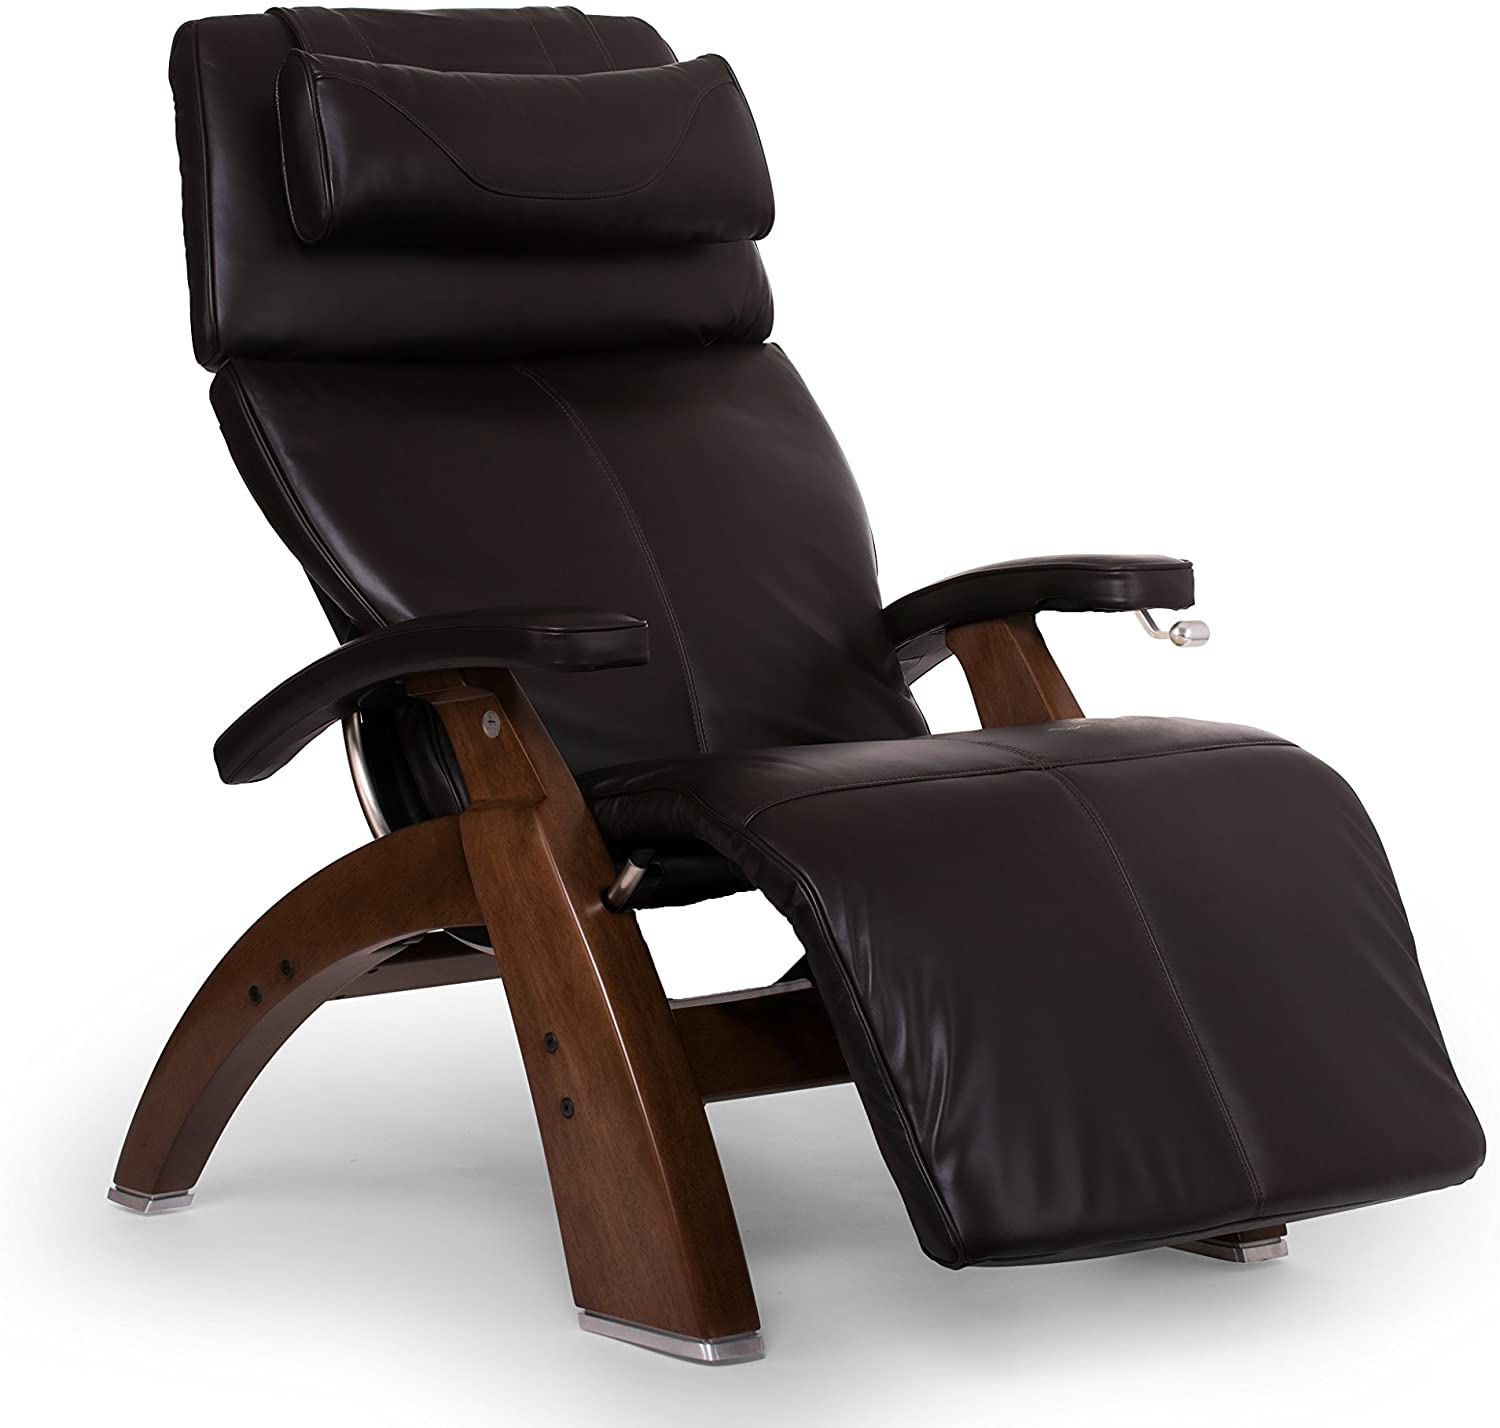 Human Touch Perfect Chair PC-420 Classic Plus Premium Full Grain Leather Zero Gravity Recliner, Espresso